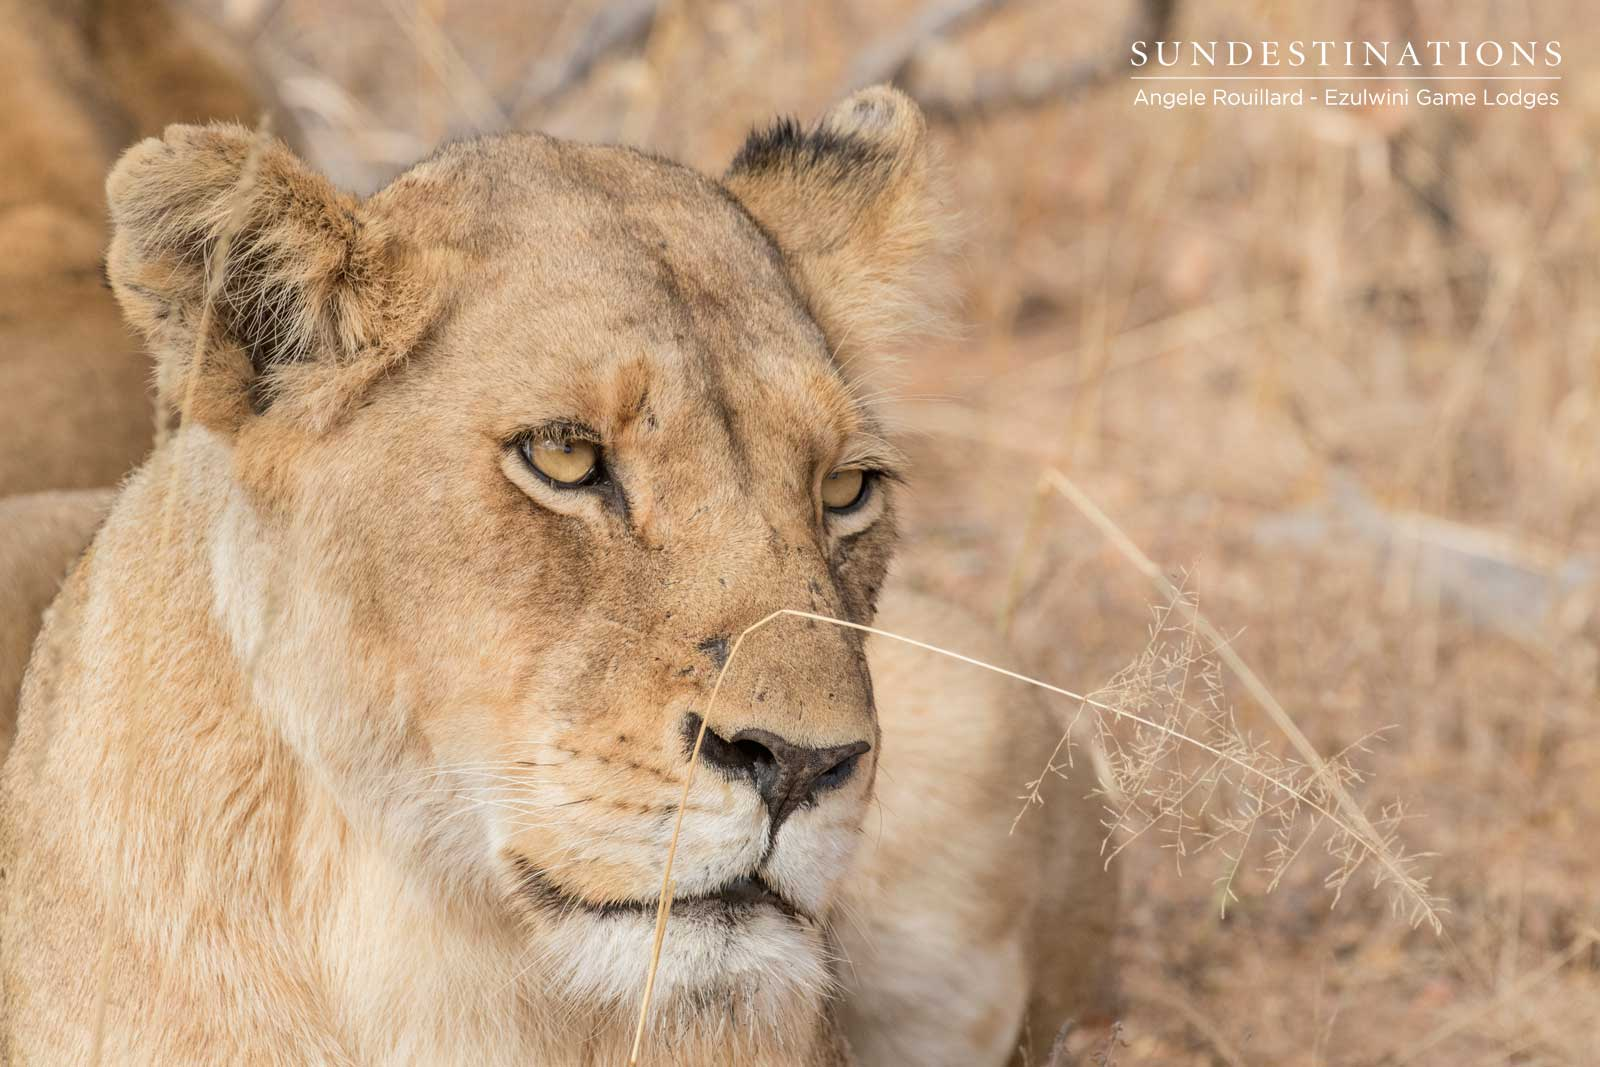 Lioness in Balule Nature Reserve